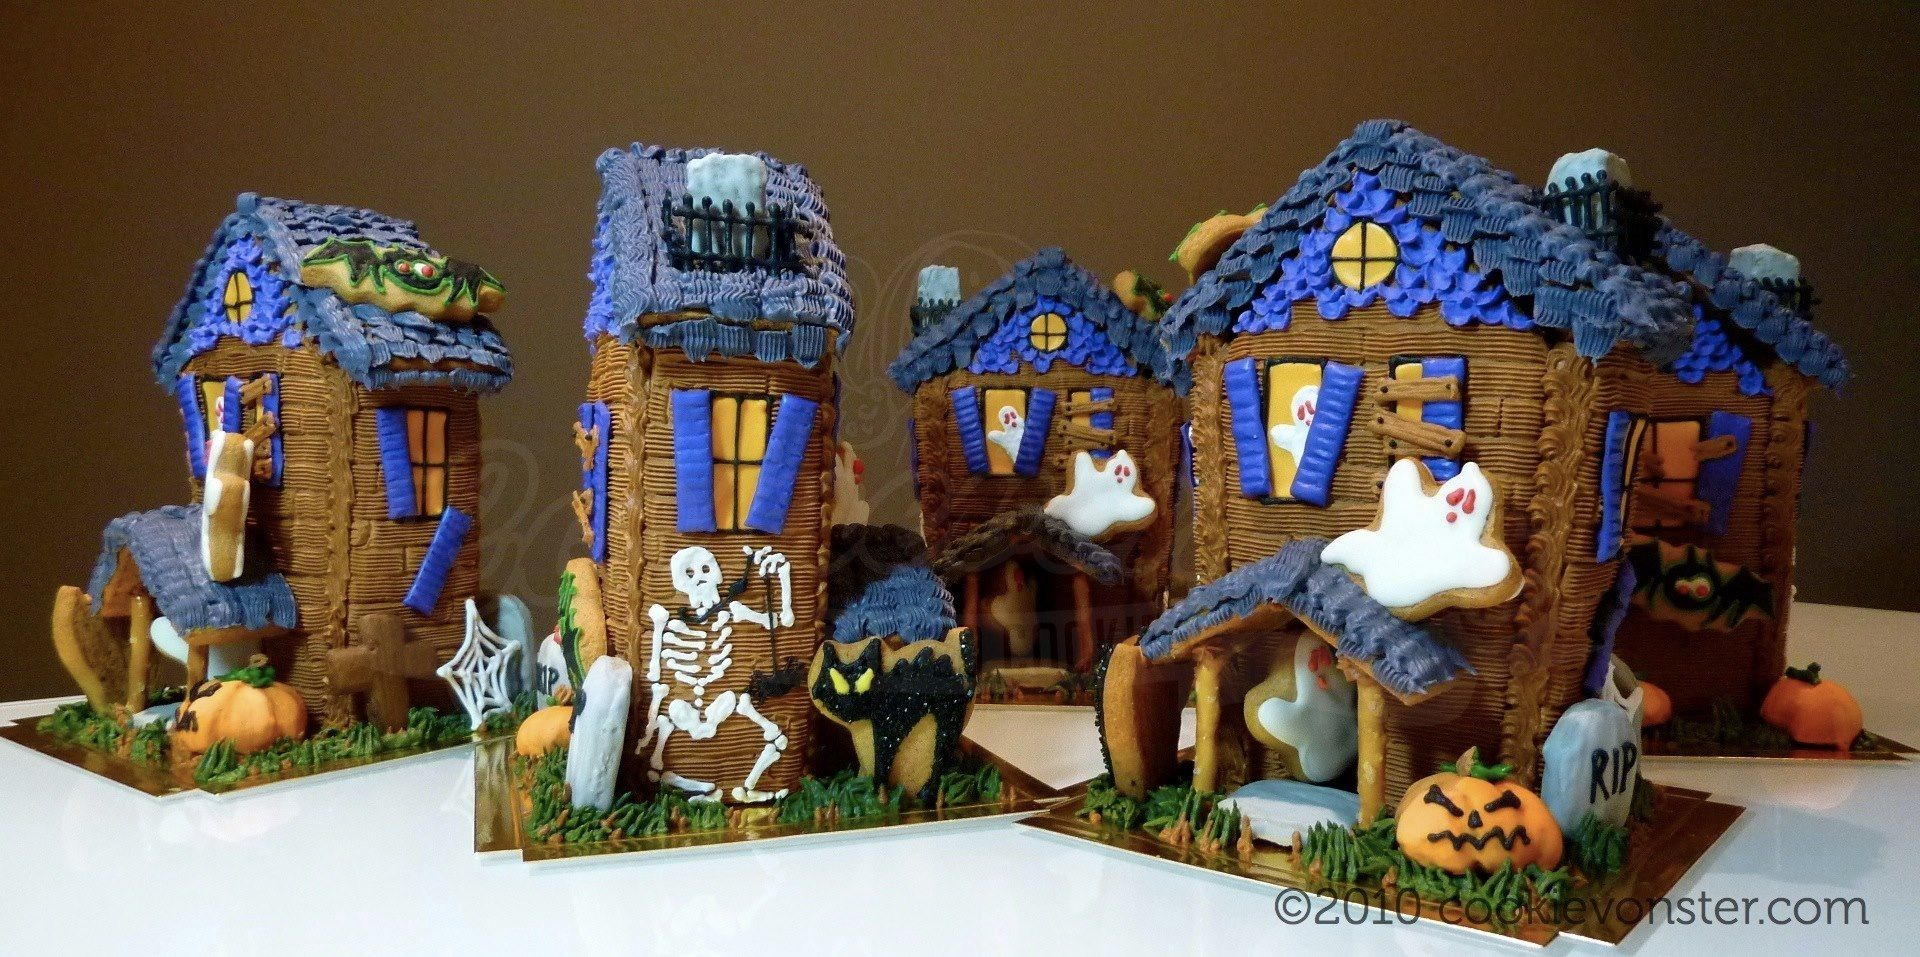 Cookievonster \u003c3 decorated cookies Holidays Halloween Creepy - halloween houses decorated